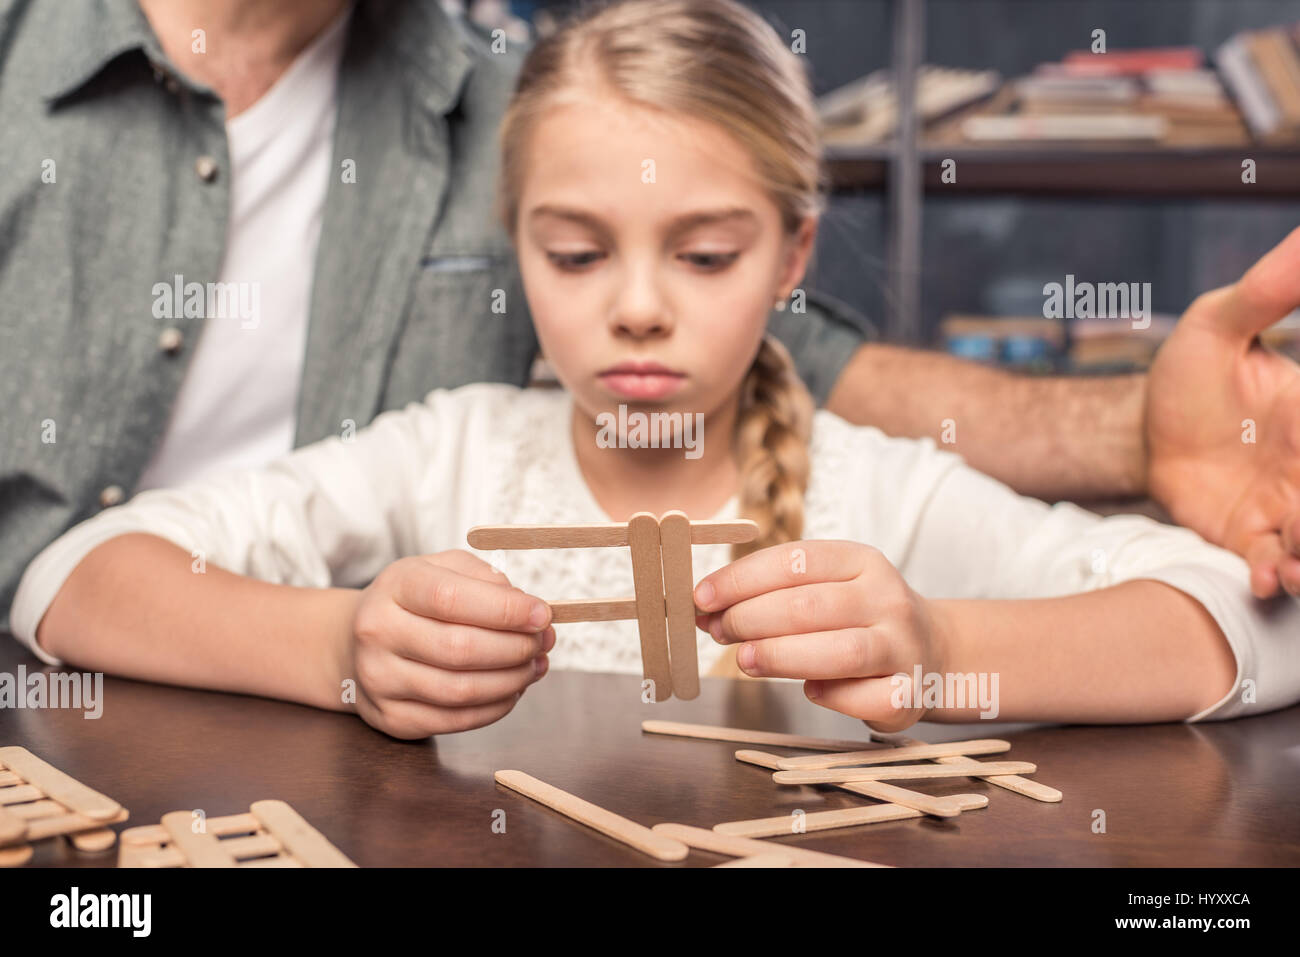 Concentrated little girl handcrafting with ice cream sticks - Stock Image